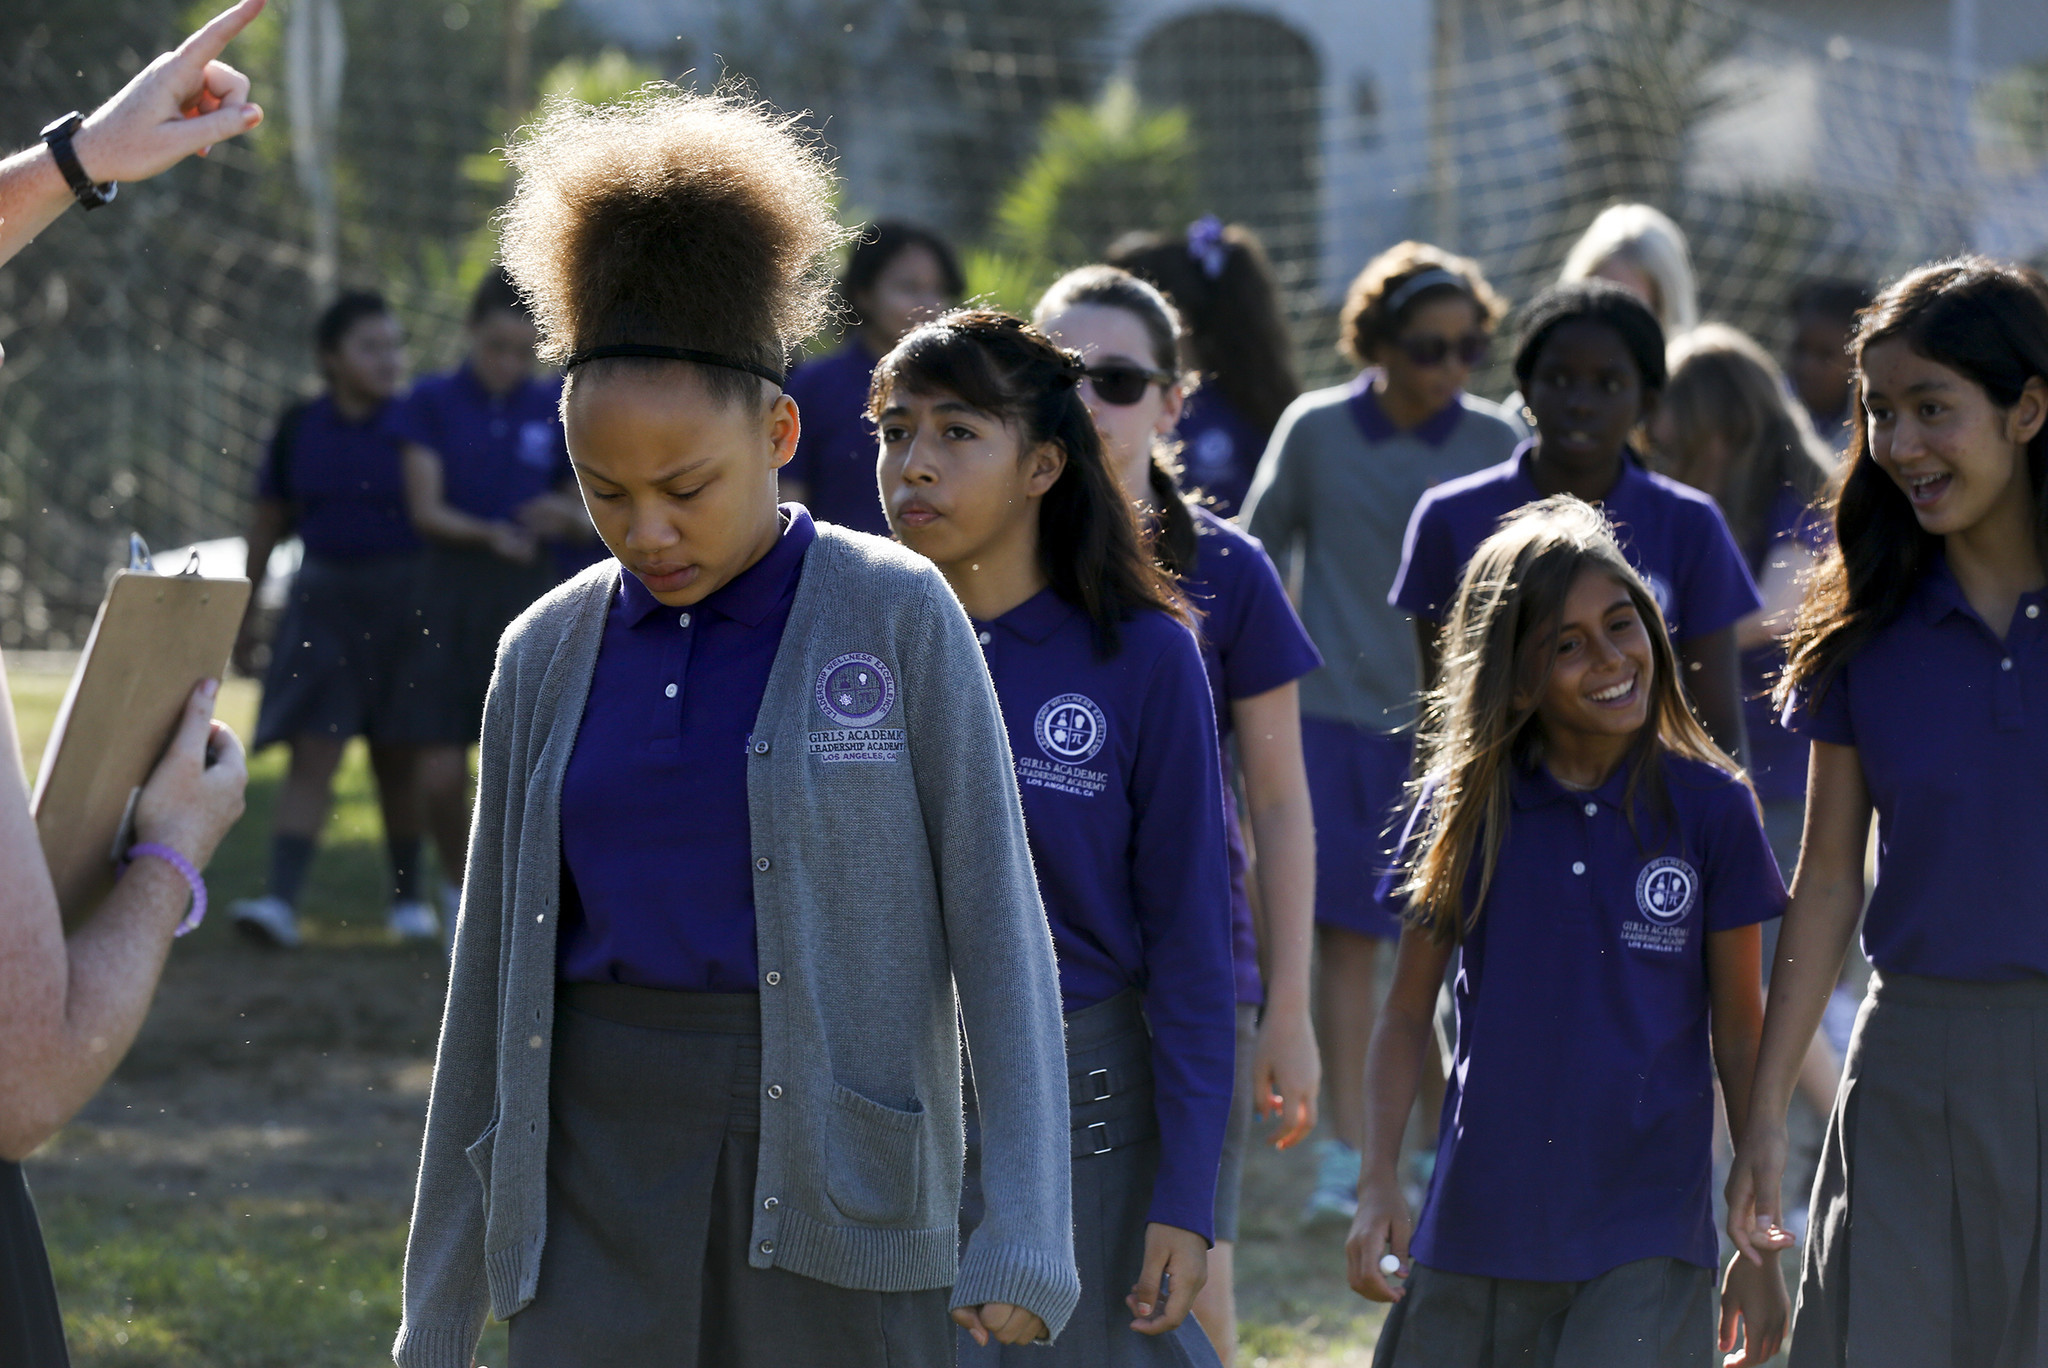 The Girls Academic Leadership Academy opened in 2016.